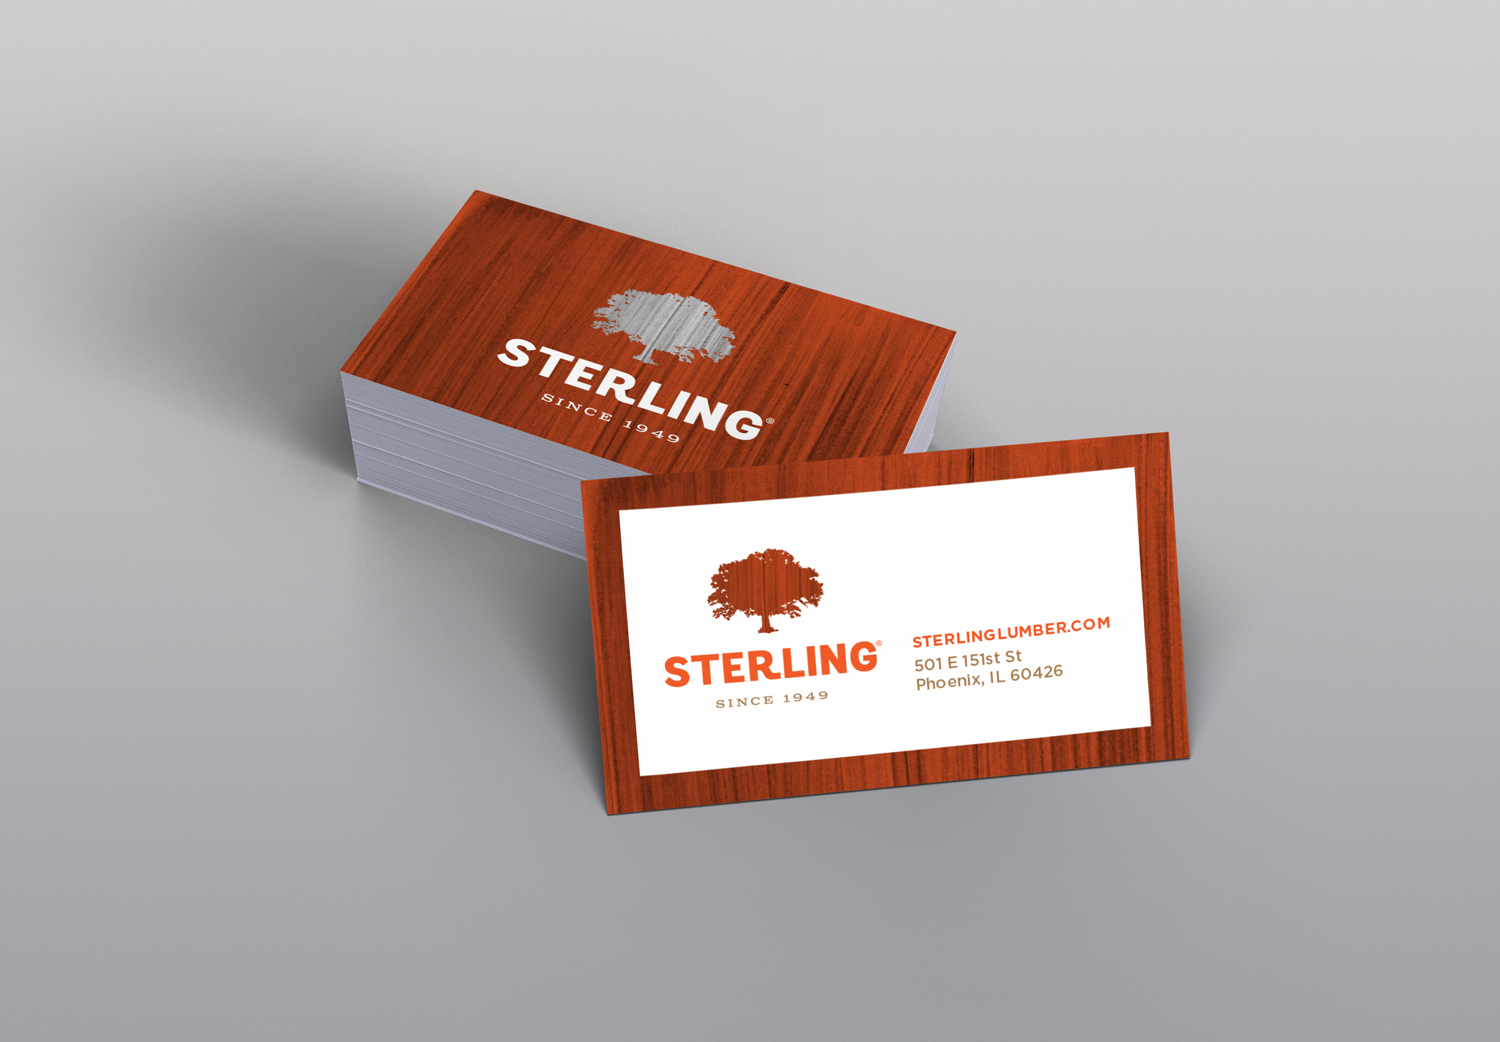 this redesign of their brand utilizes an oak tree which is the core wood used in all of their products each service line uses a color to the